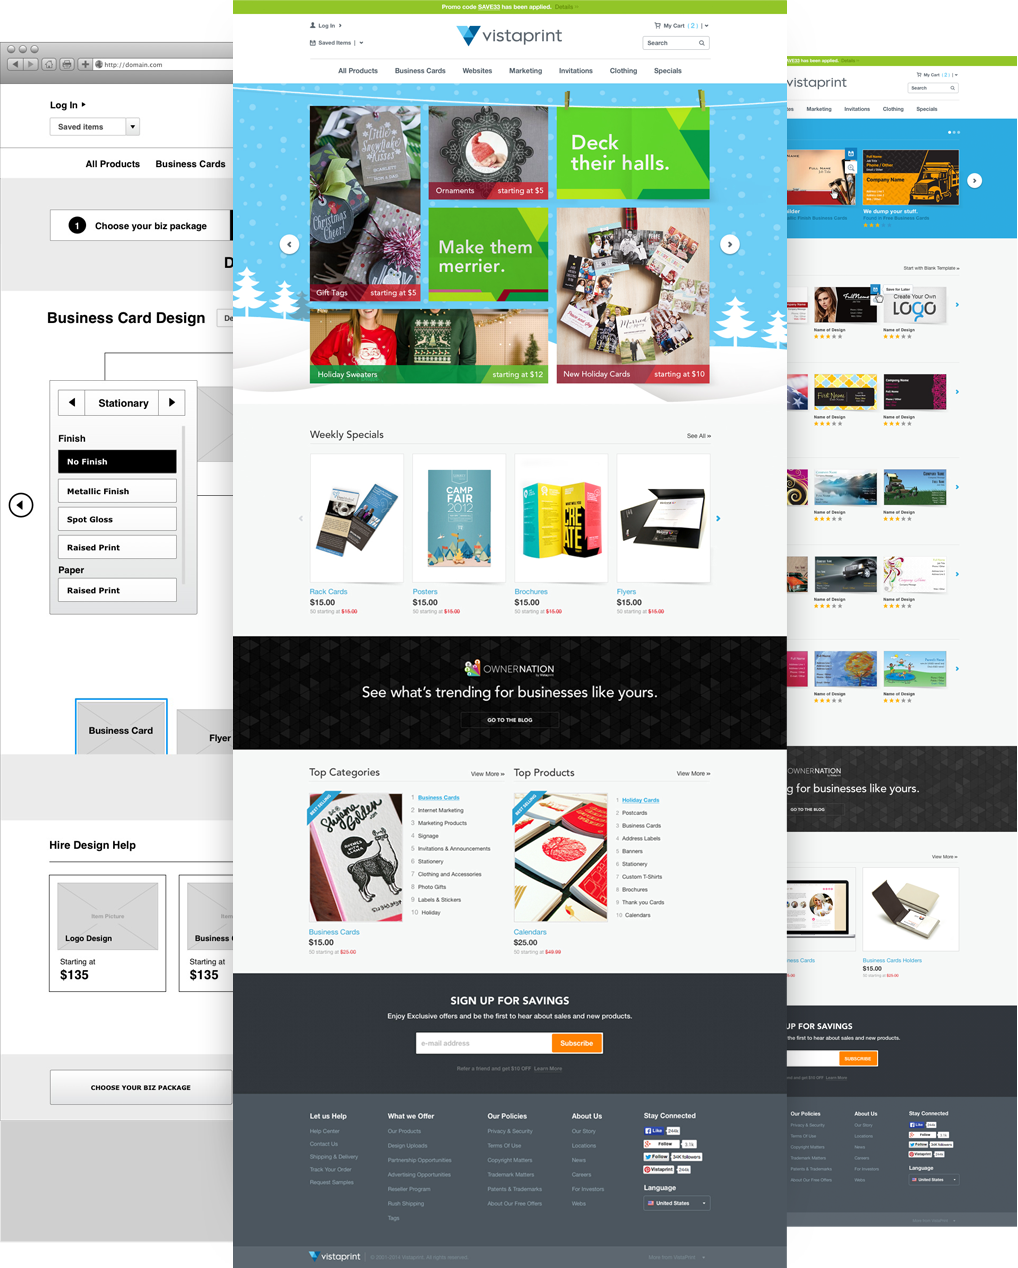 vistaprint_ux_site